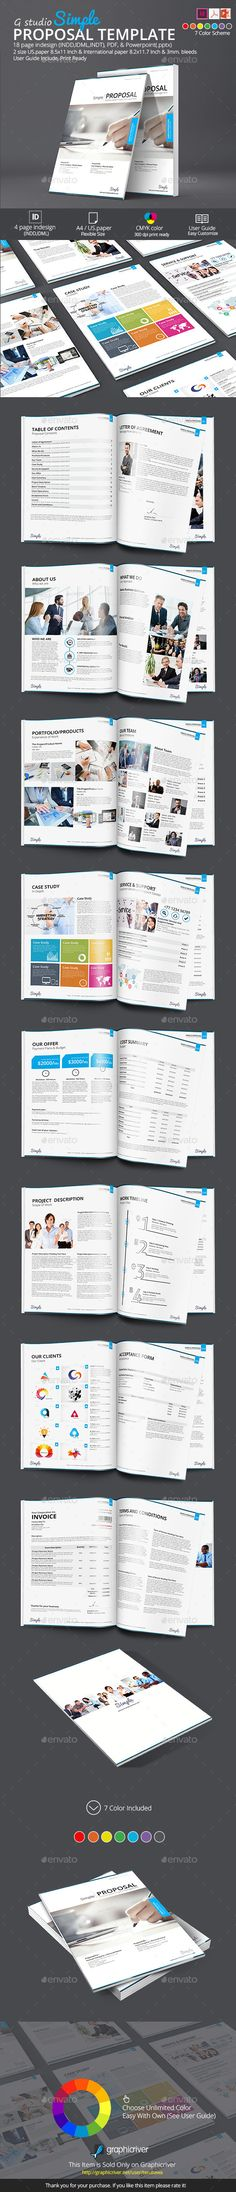 Simple Proposal Template Proposal Proposal templates